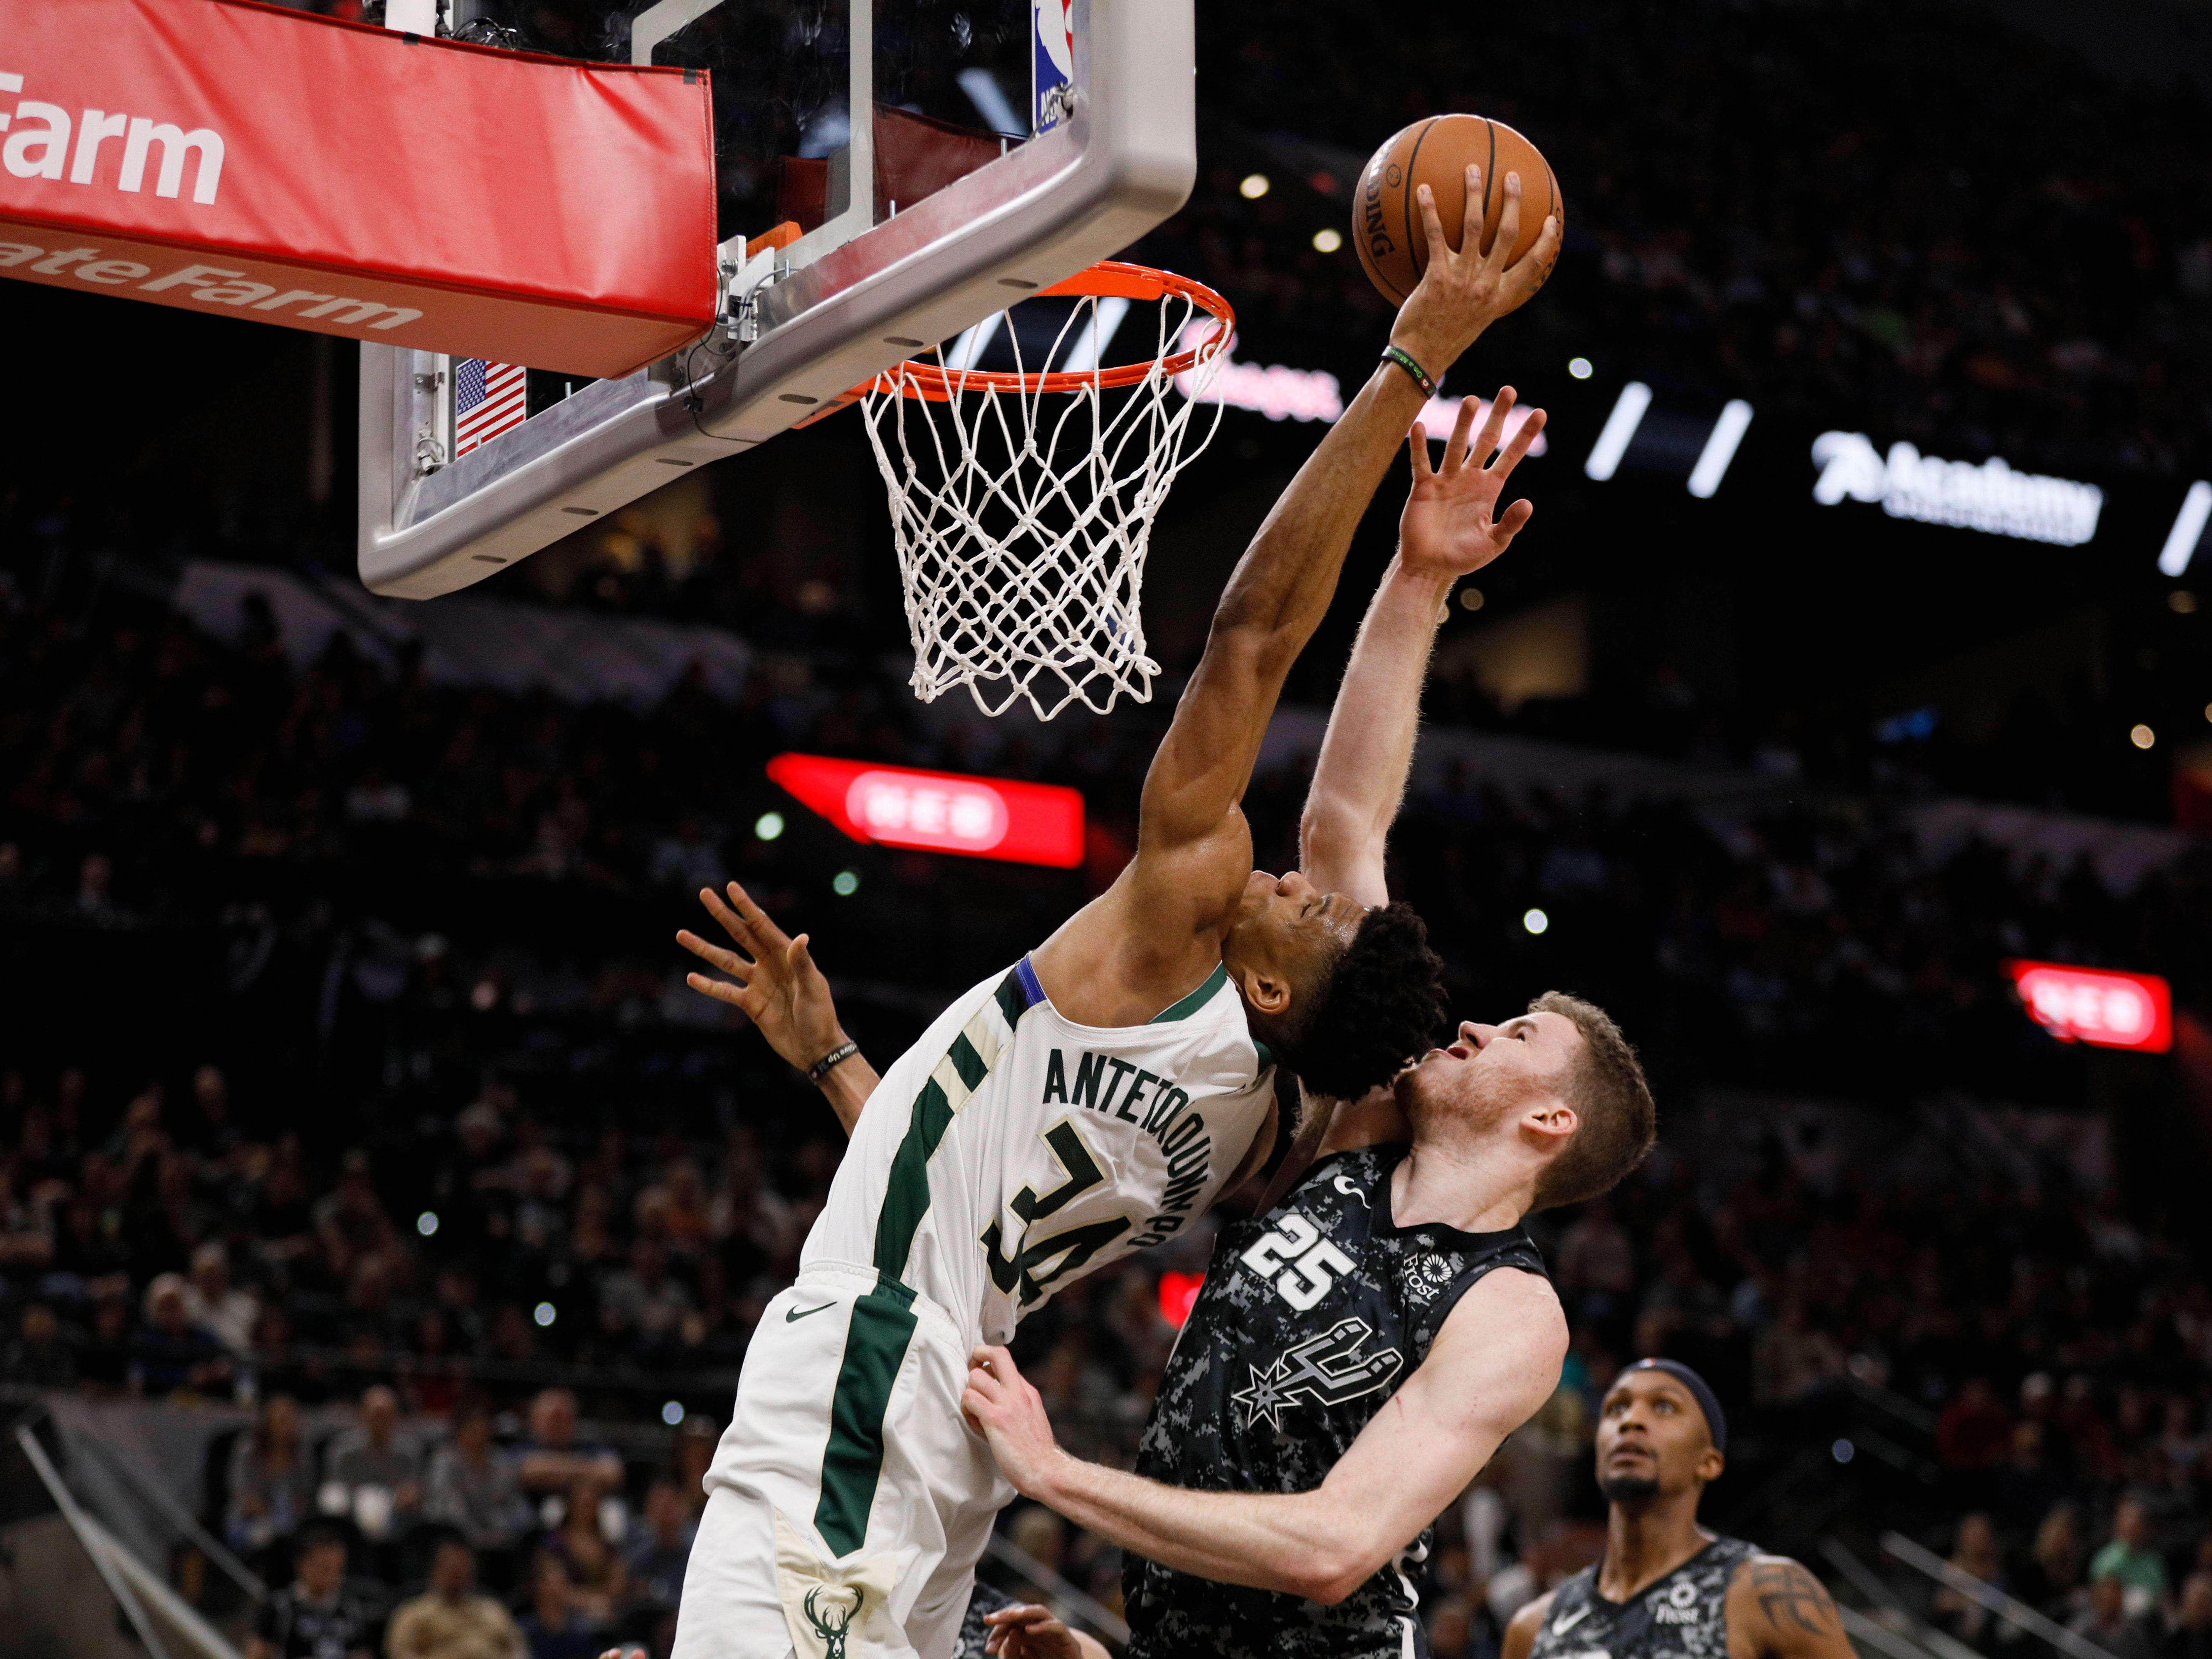 Bucks forward Giannis Antetokounmpo goes up for a dunk against Spurs center Jakob Poeltl during the first half.